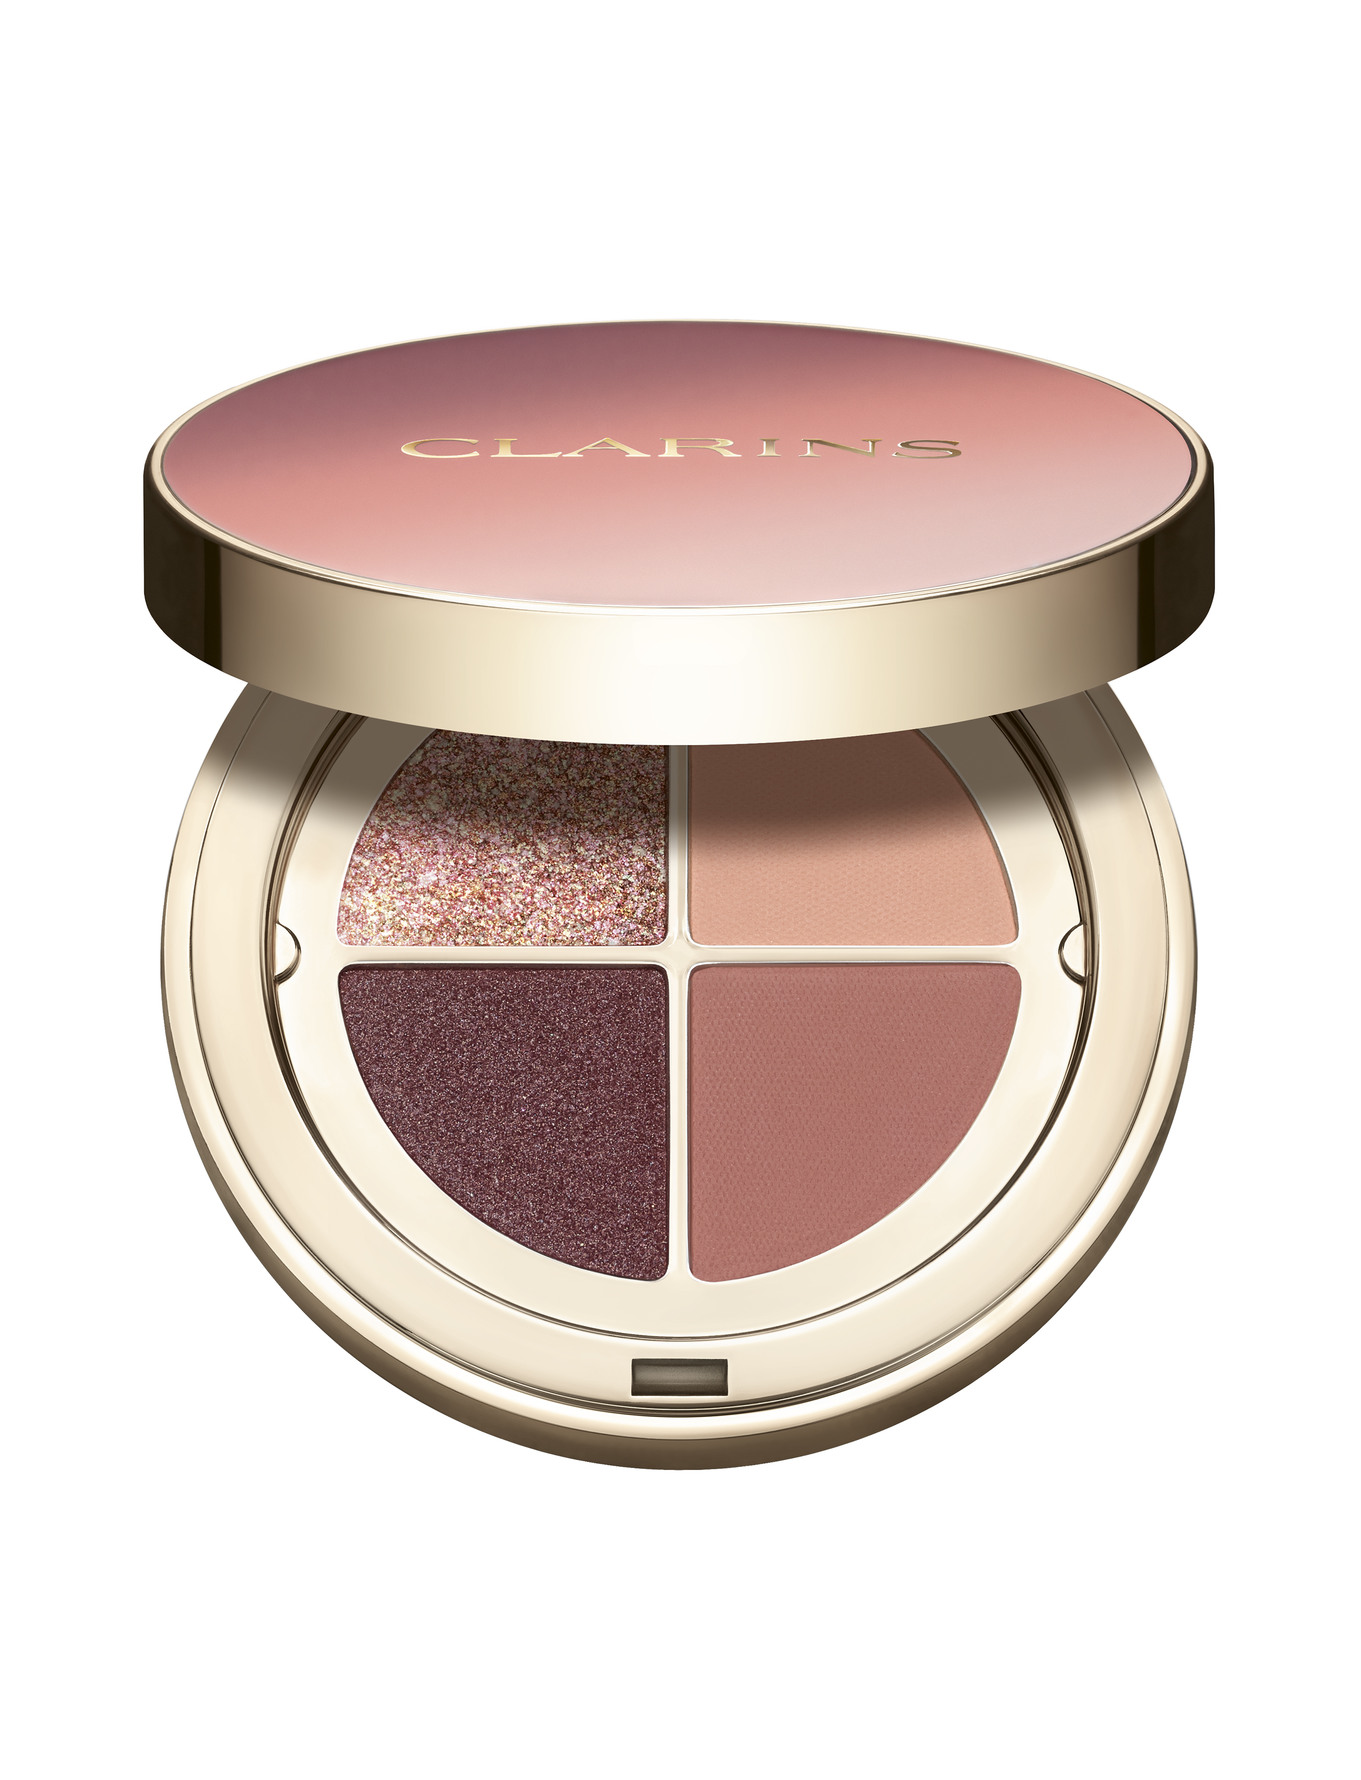 Køb Clarins 4-Colour Eyeshadow Palette 01 Fairy tale nude